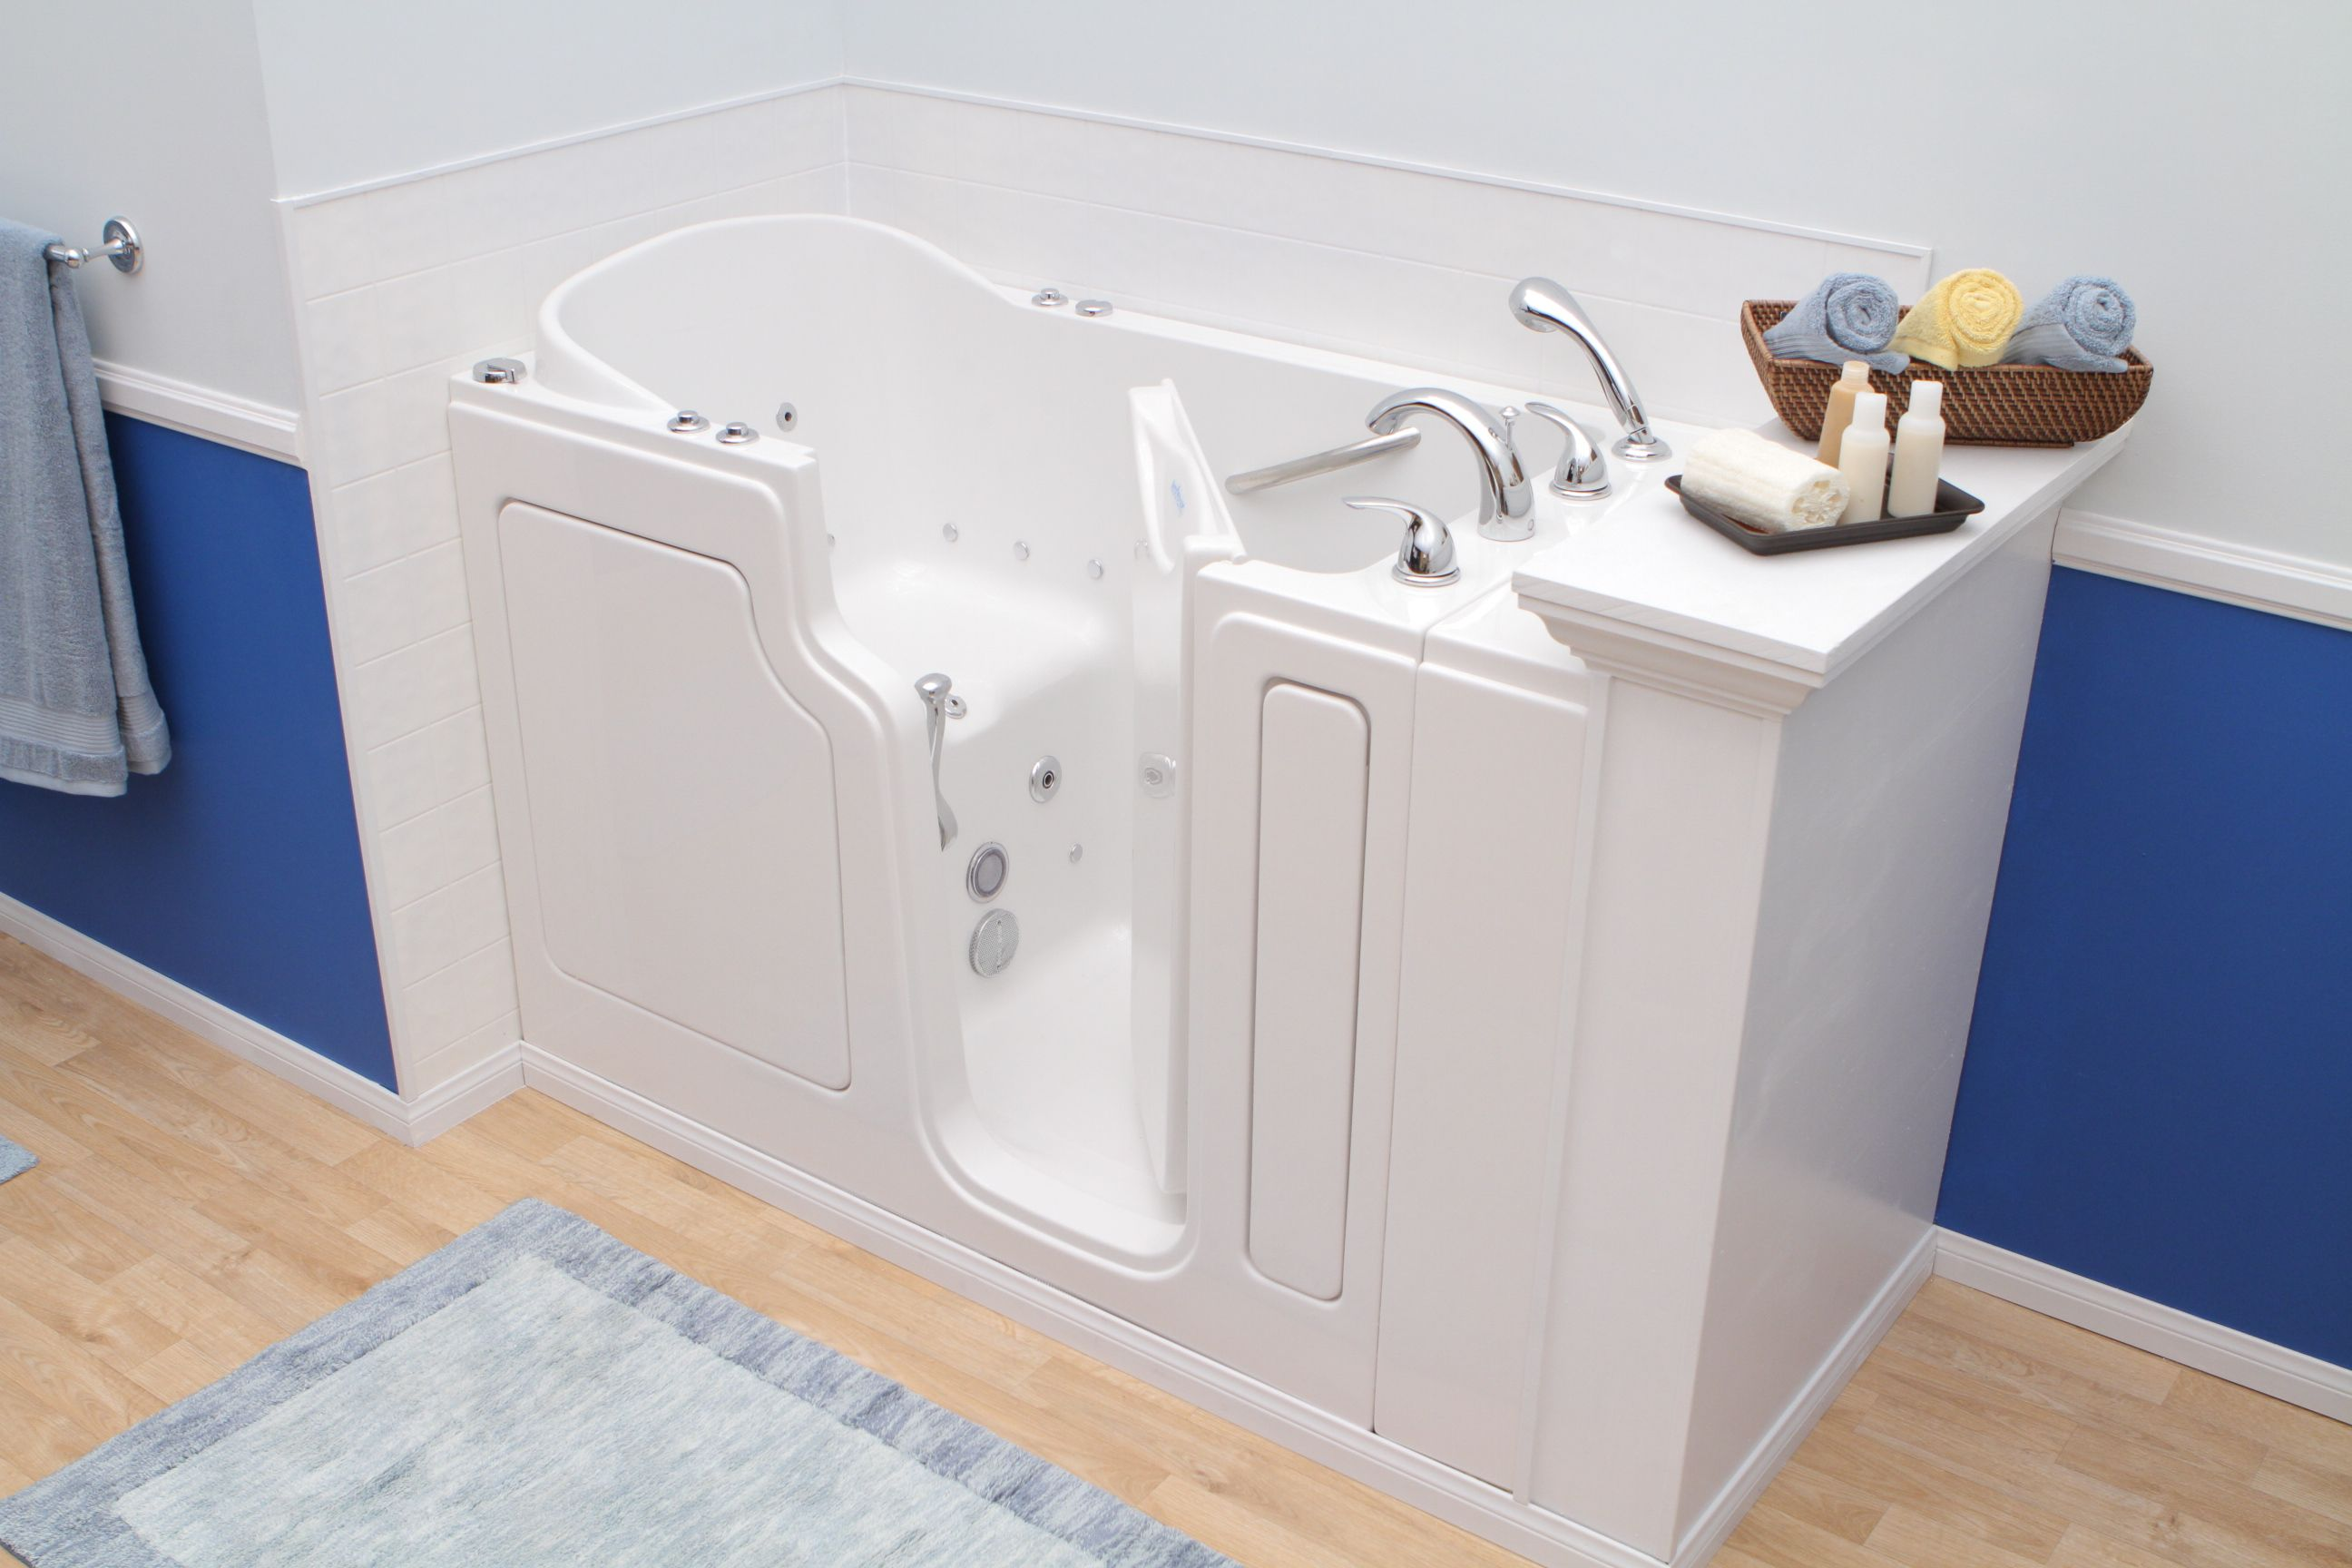 Safe Step Tub Walk In Tub Designed To Facilitate Bathing For